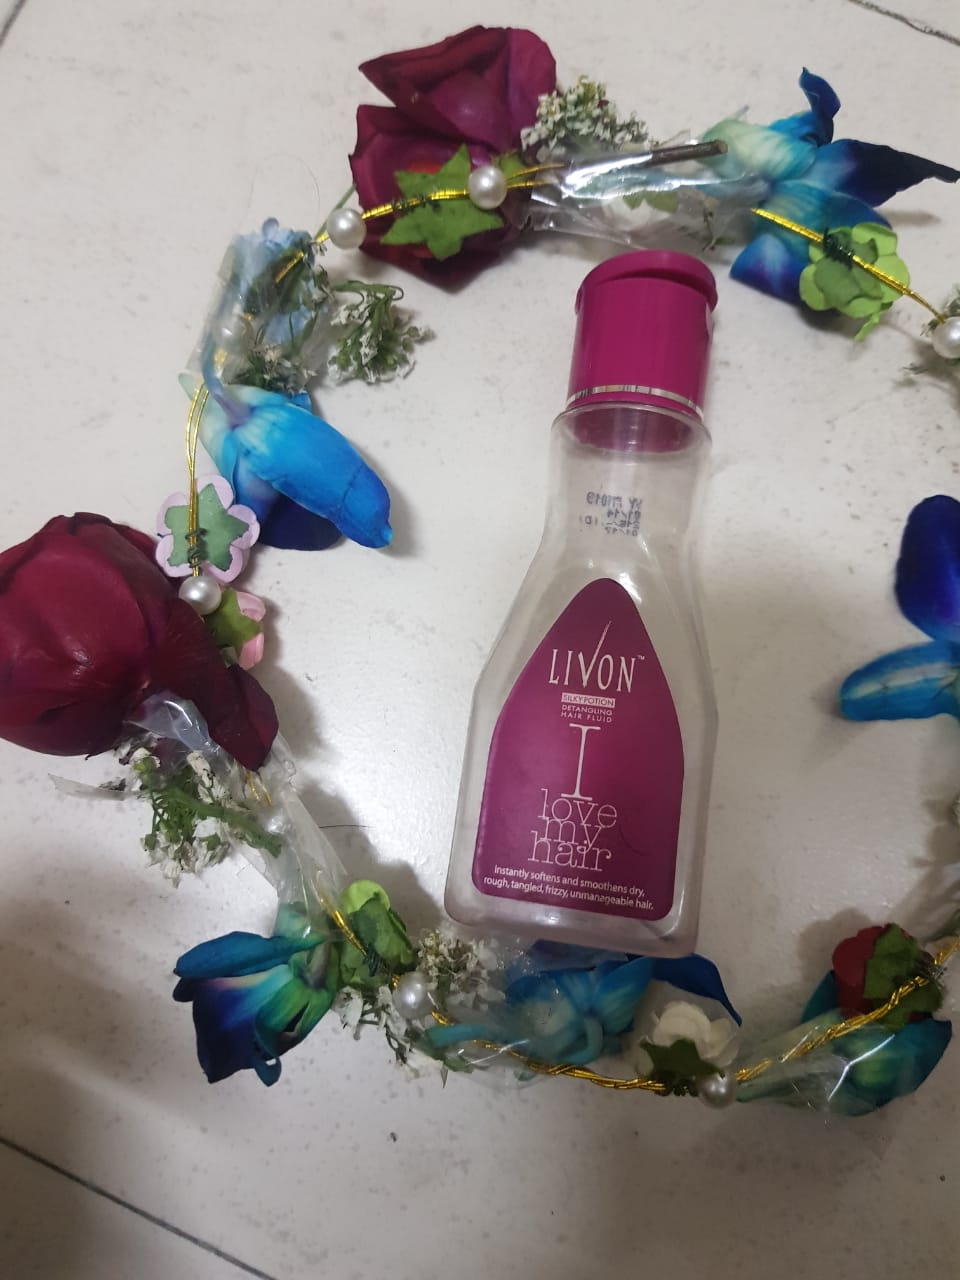 Livon Silky Potion Detangling Hair Fluid-My first serum brand-By poonam_kakkar